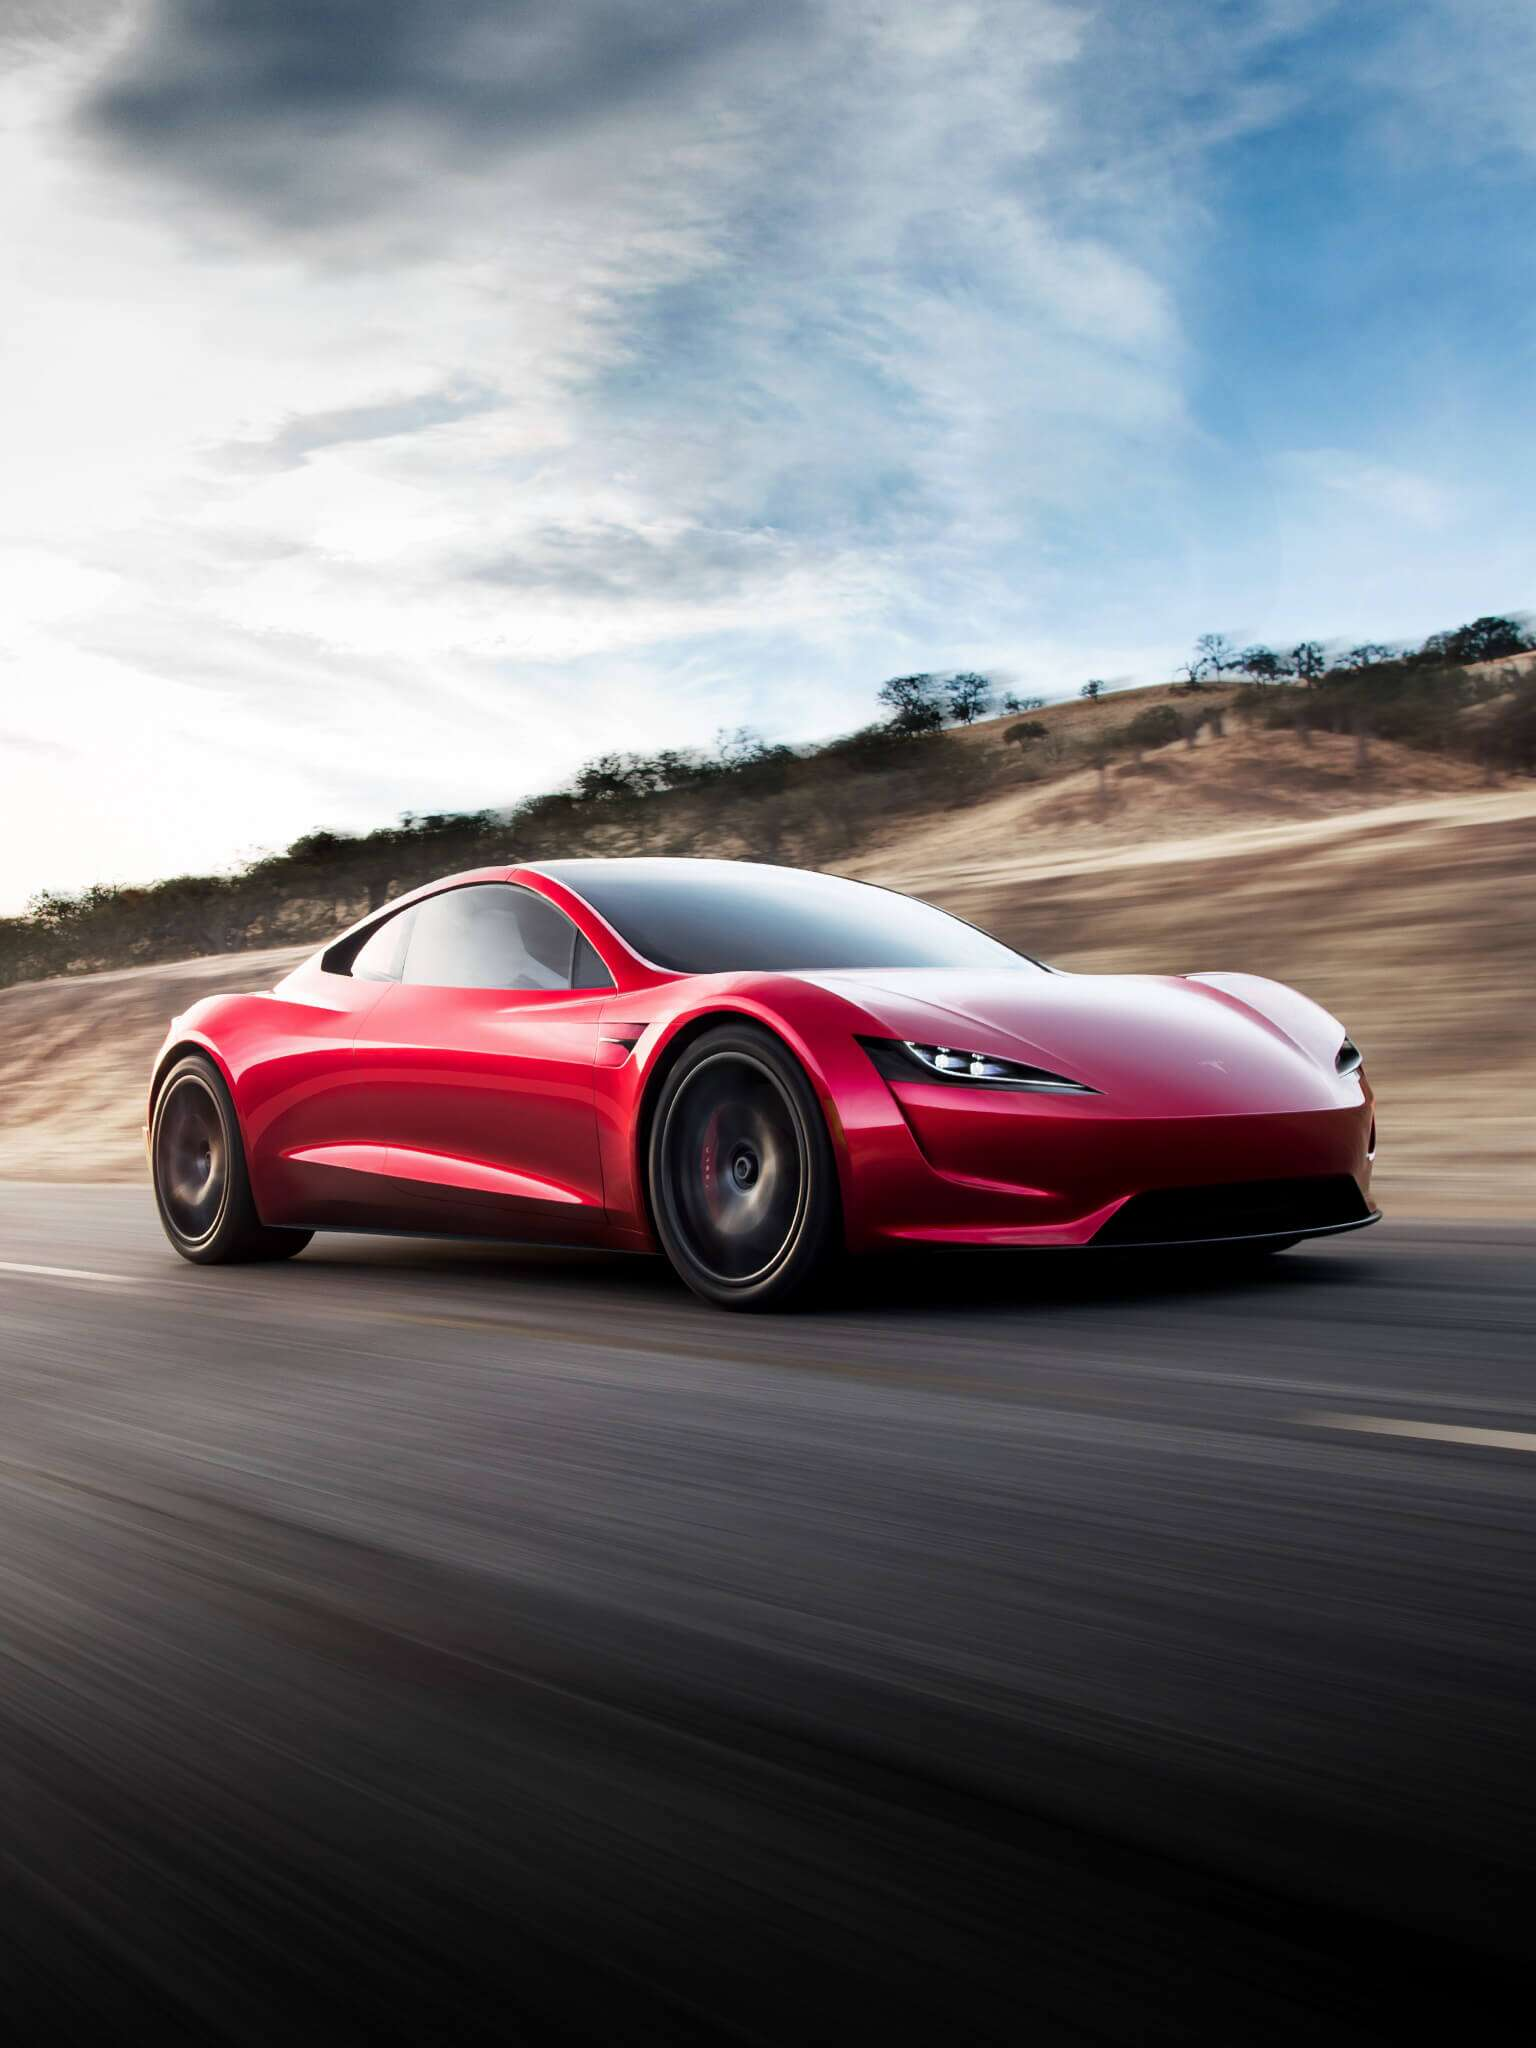 Tesla Roadster Wallpaper for mobile